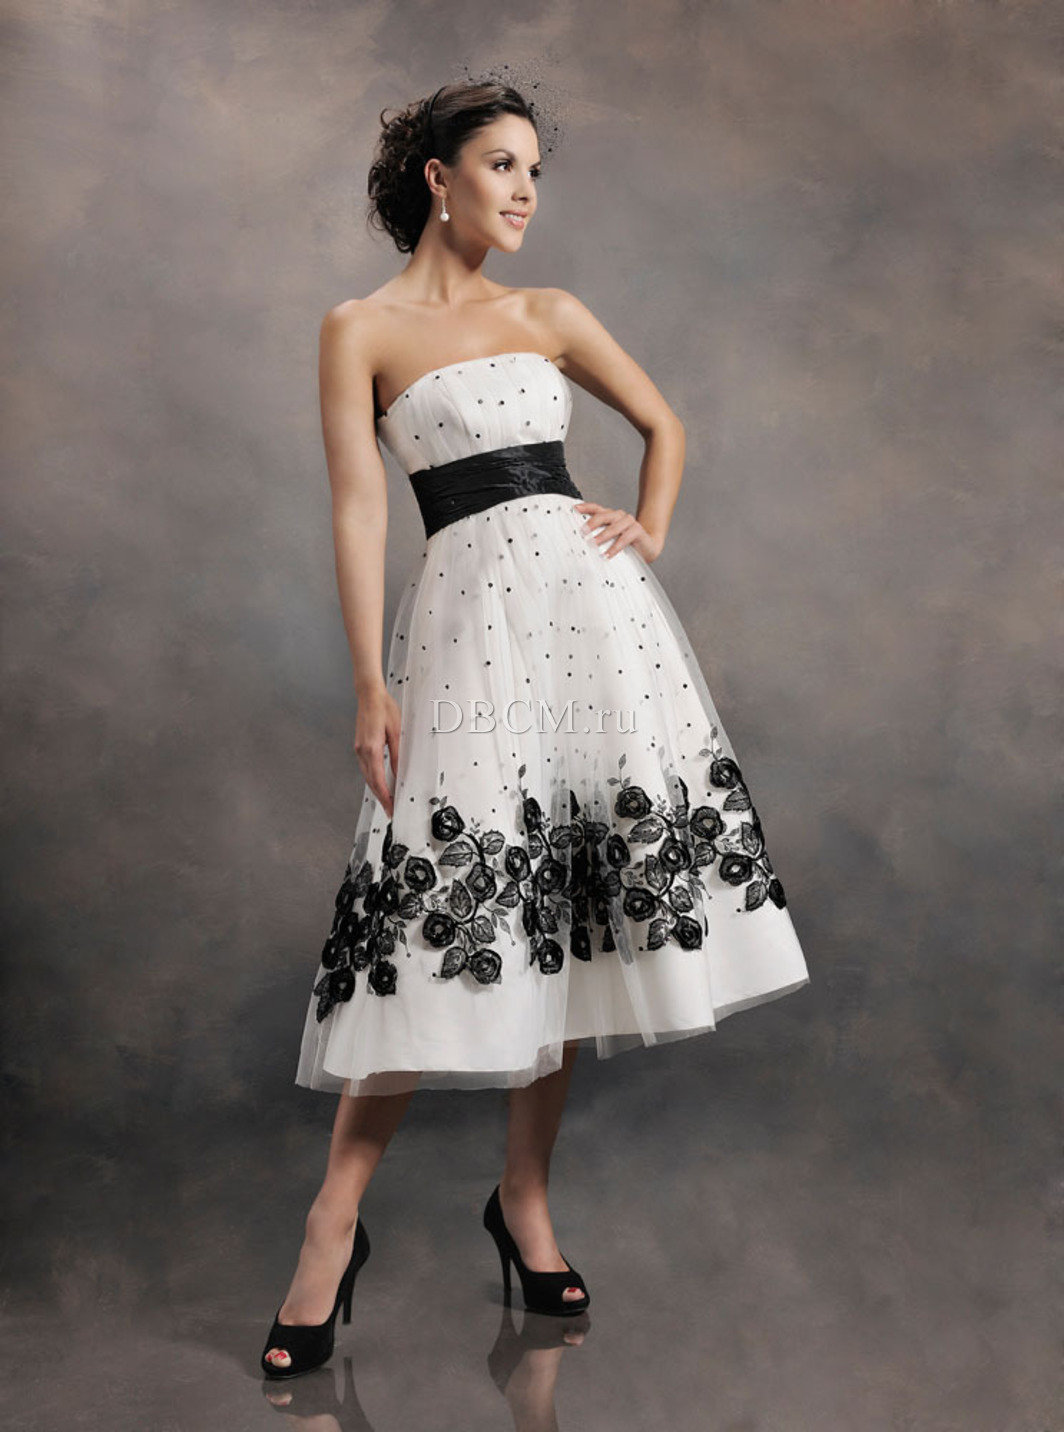 30 ideas of beautiful black and white wedding dresses for Short red and white wedding dresses